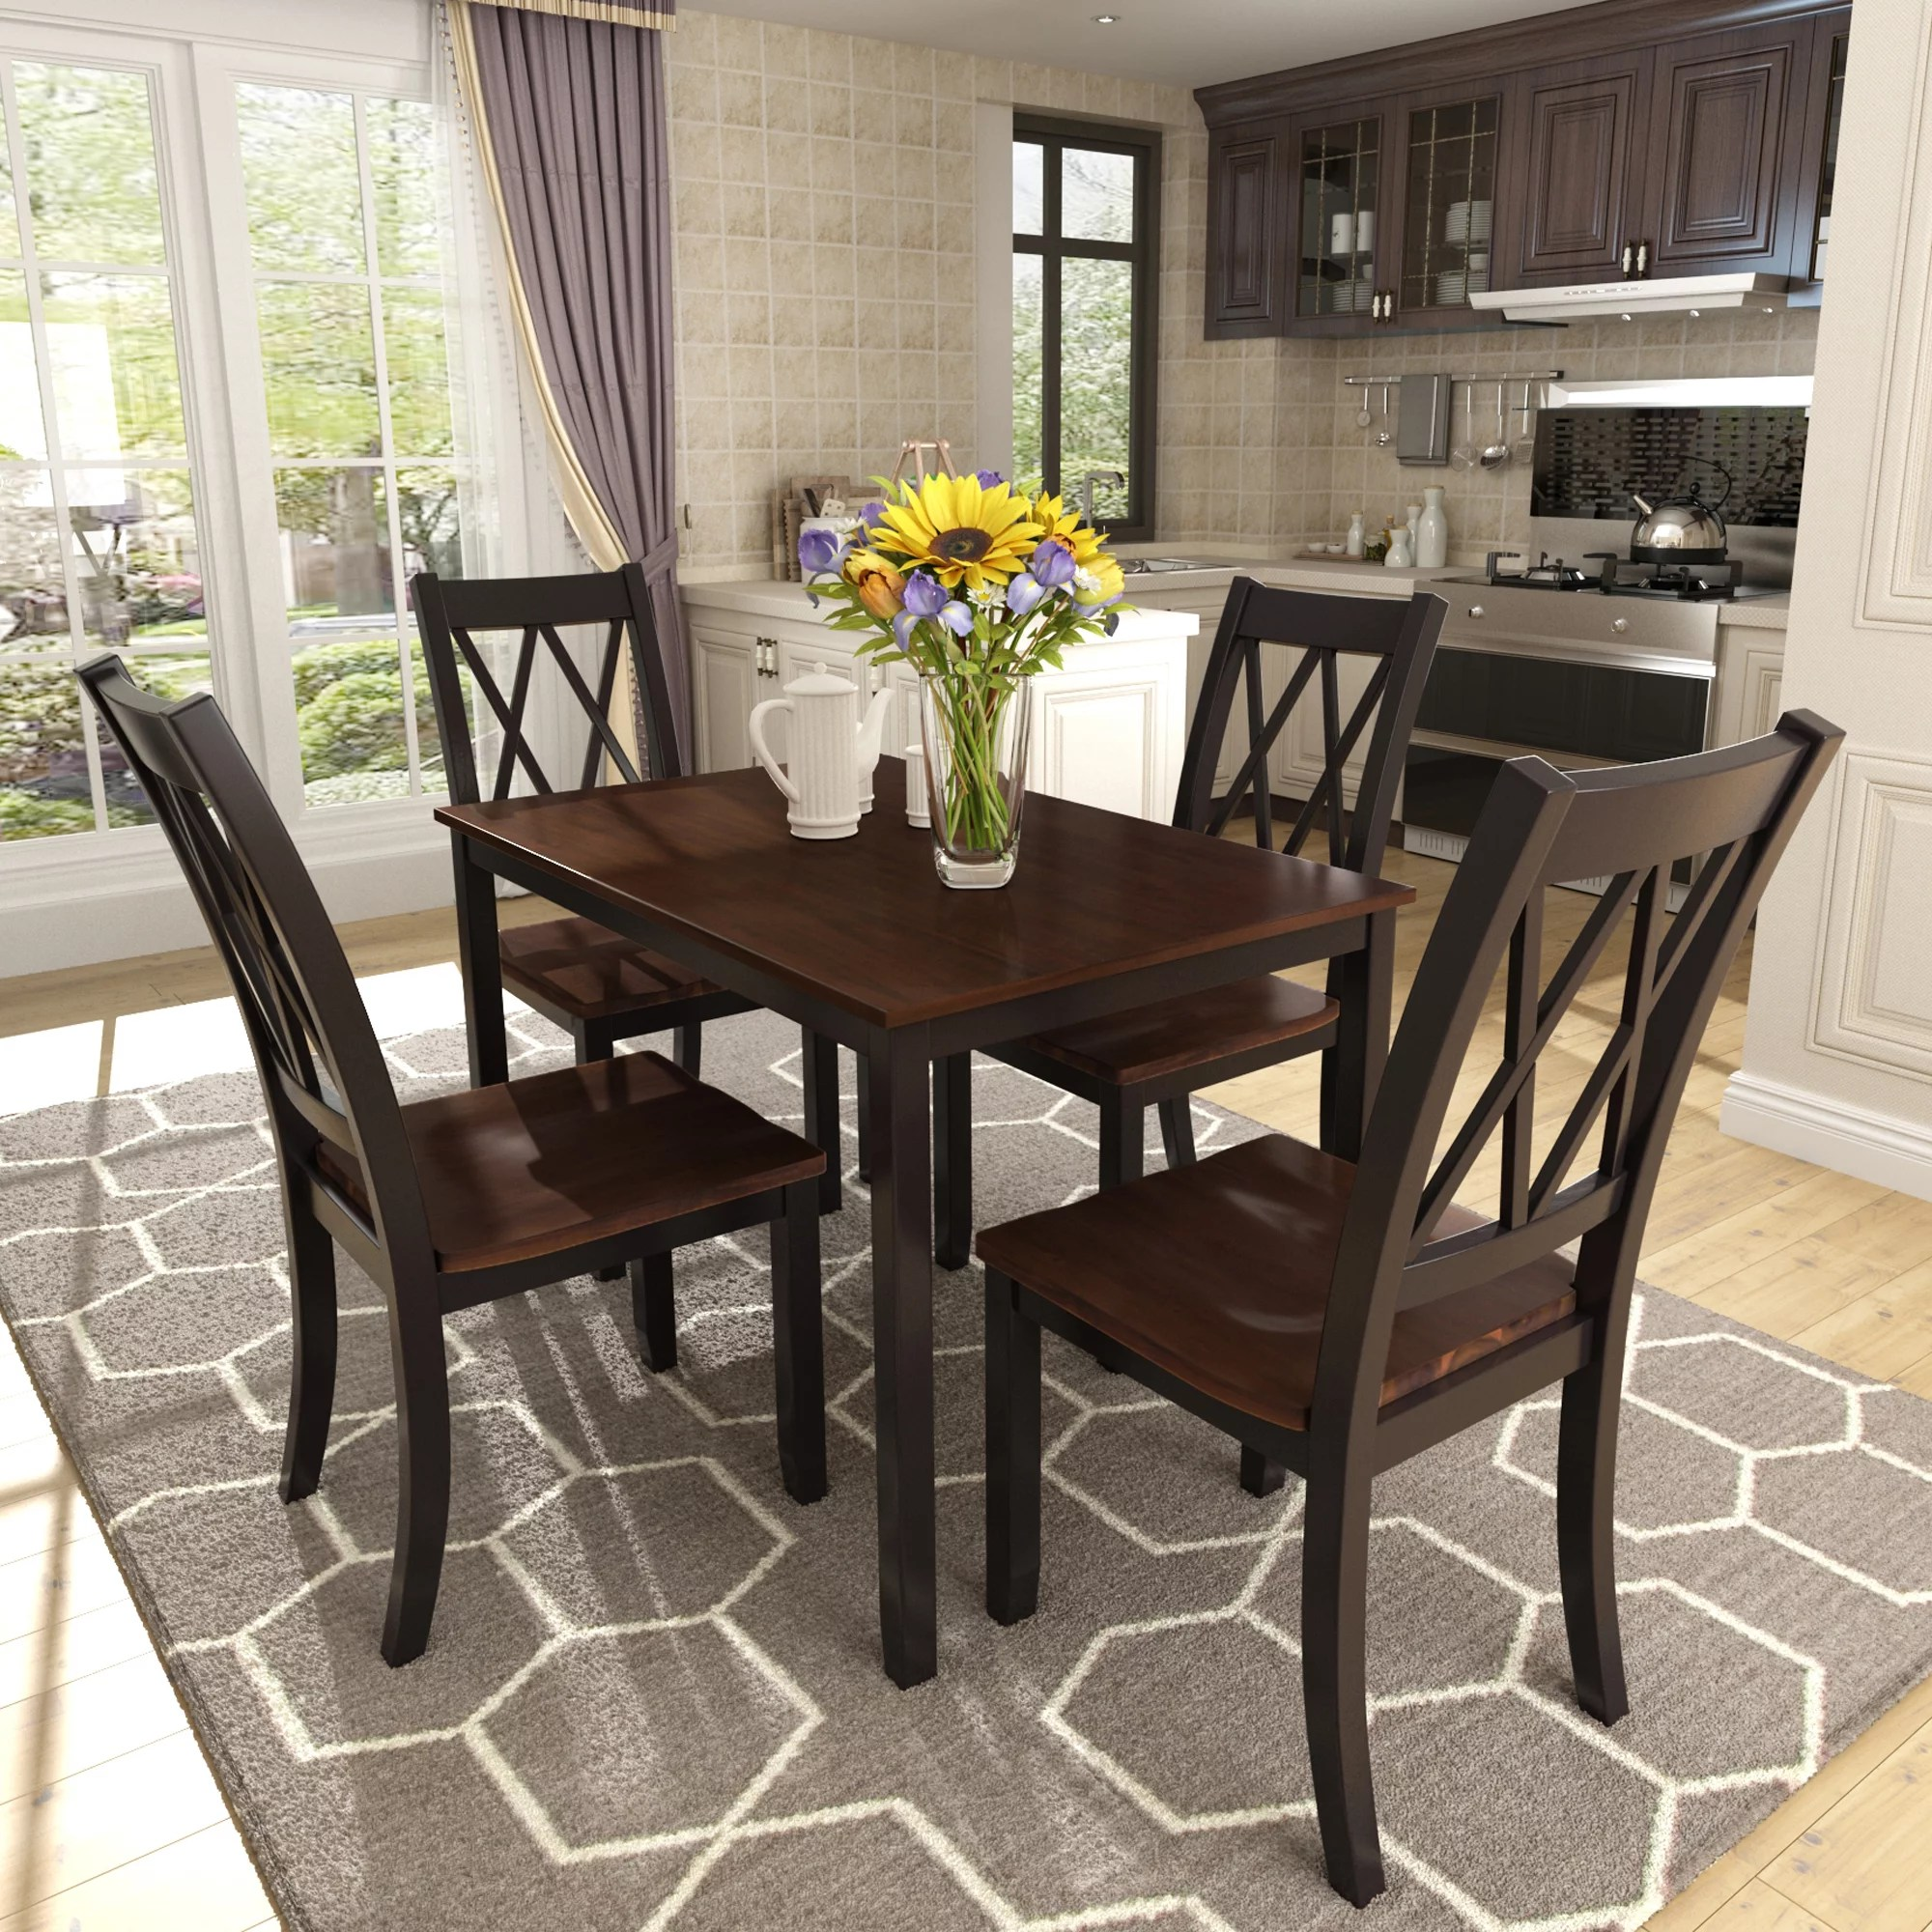 clearance dining table set with 4 chairs 5 piece wooden on dining room sets on clearance id=58543